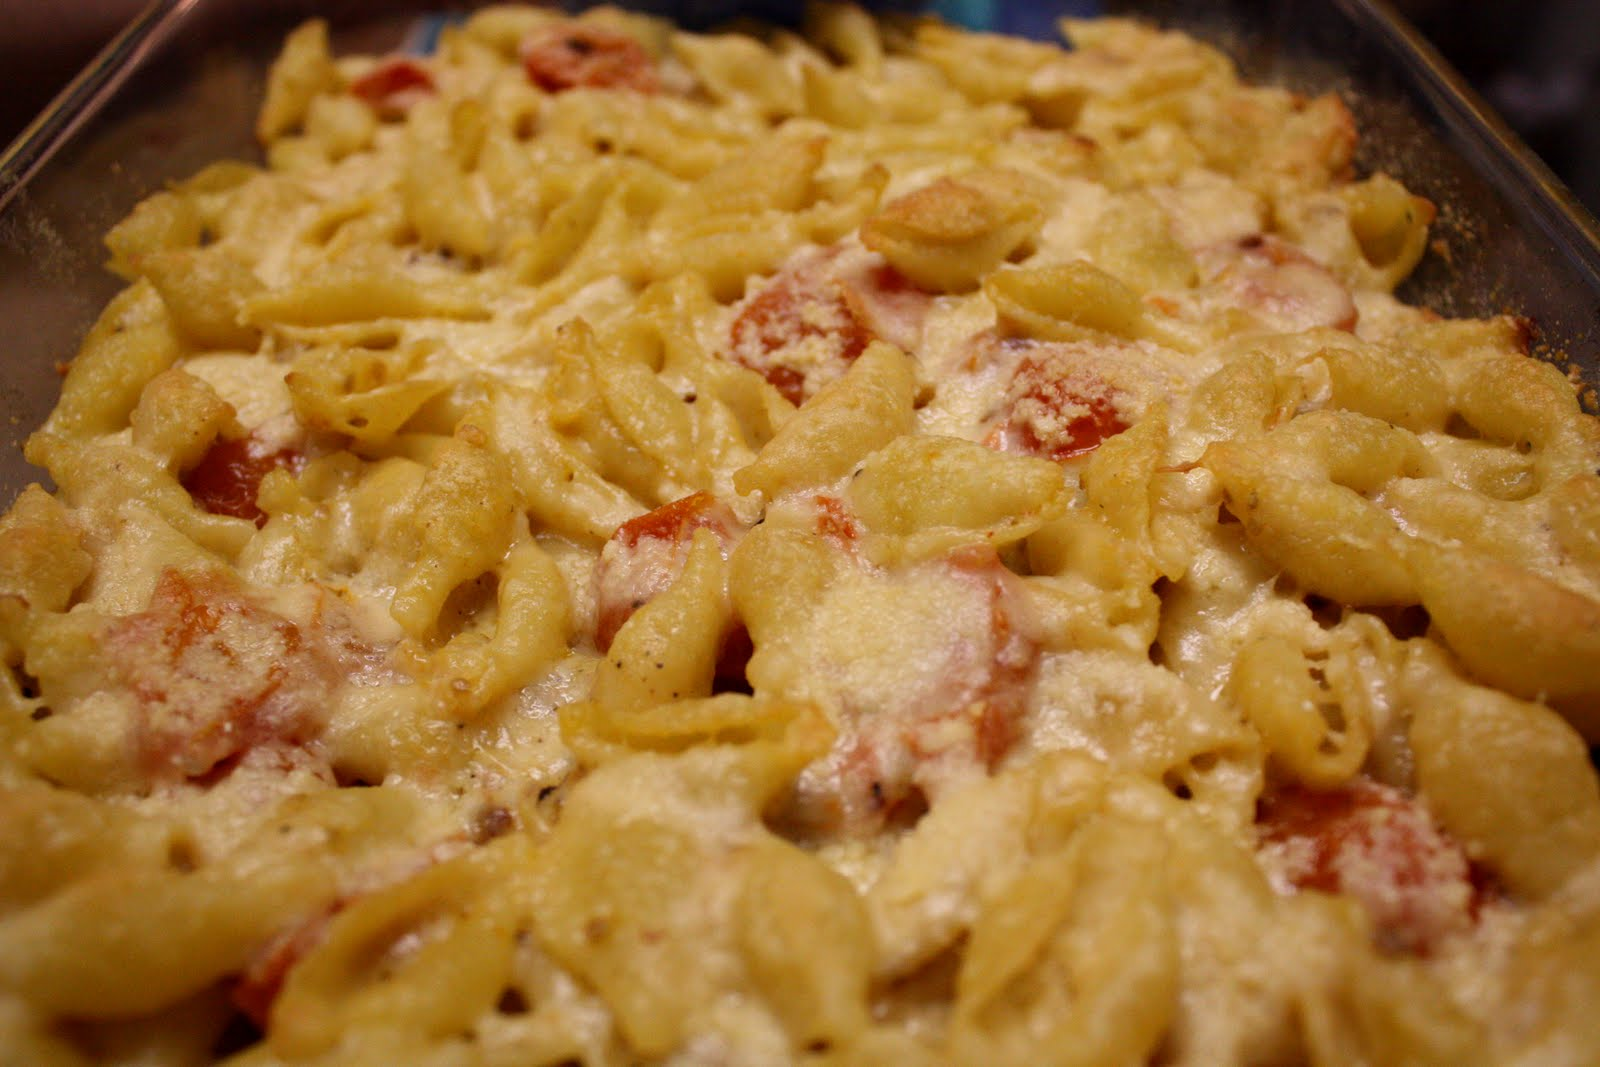 Baked Shell Pasta w/Cherry Tomatoes (gluten-free option, contains ...